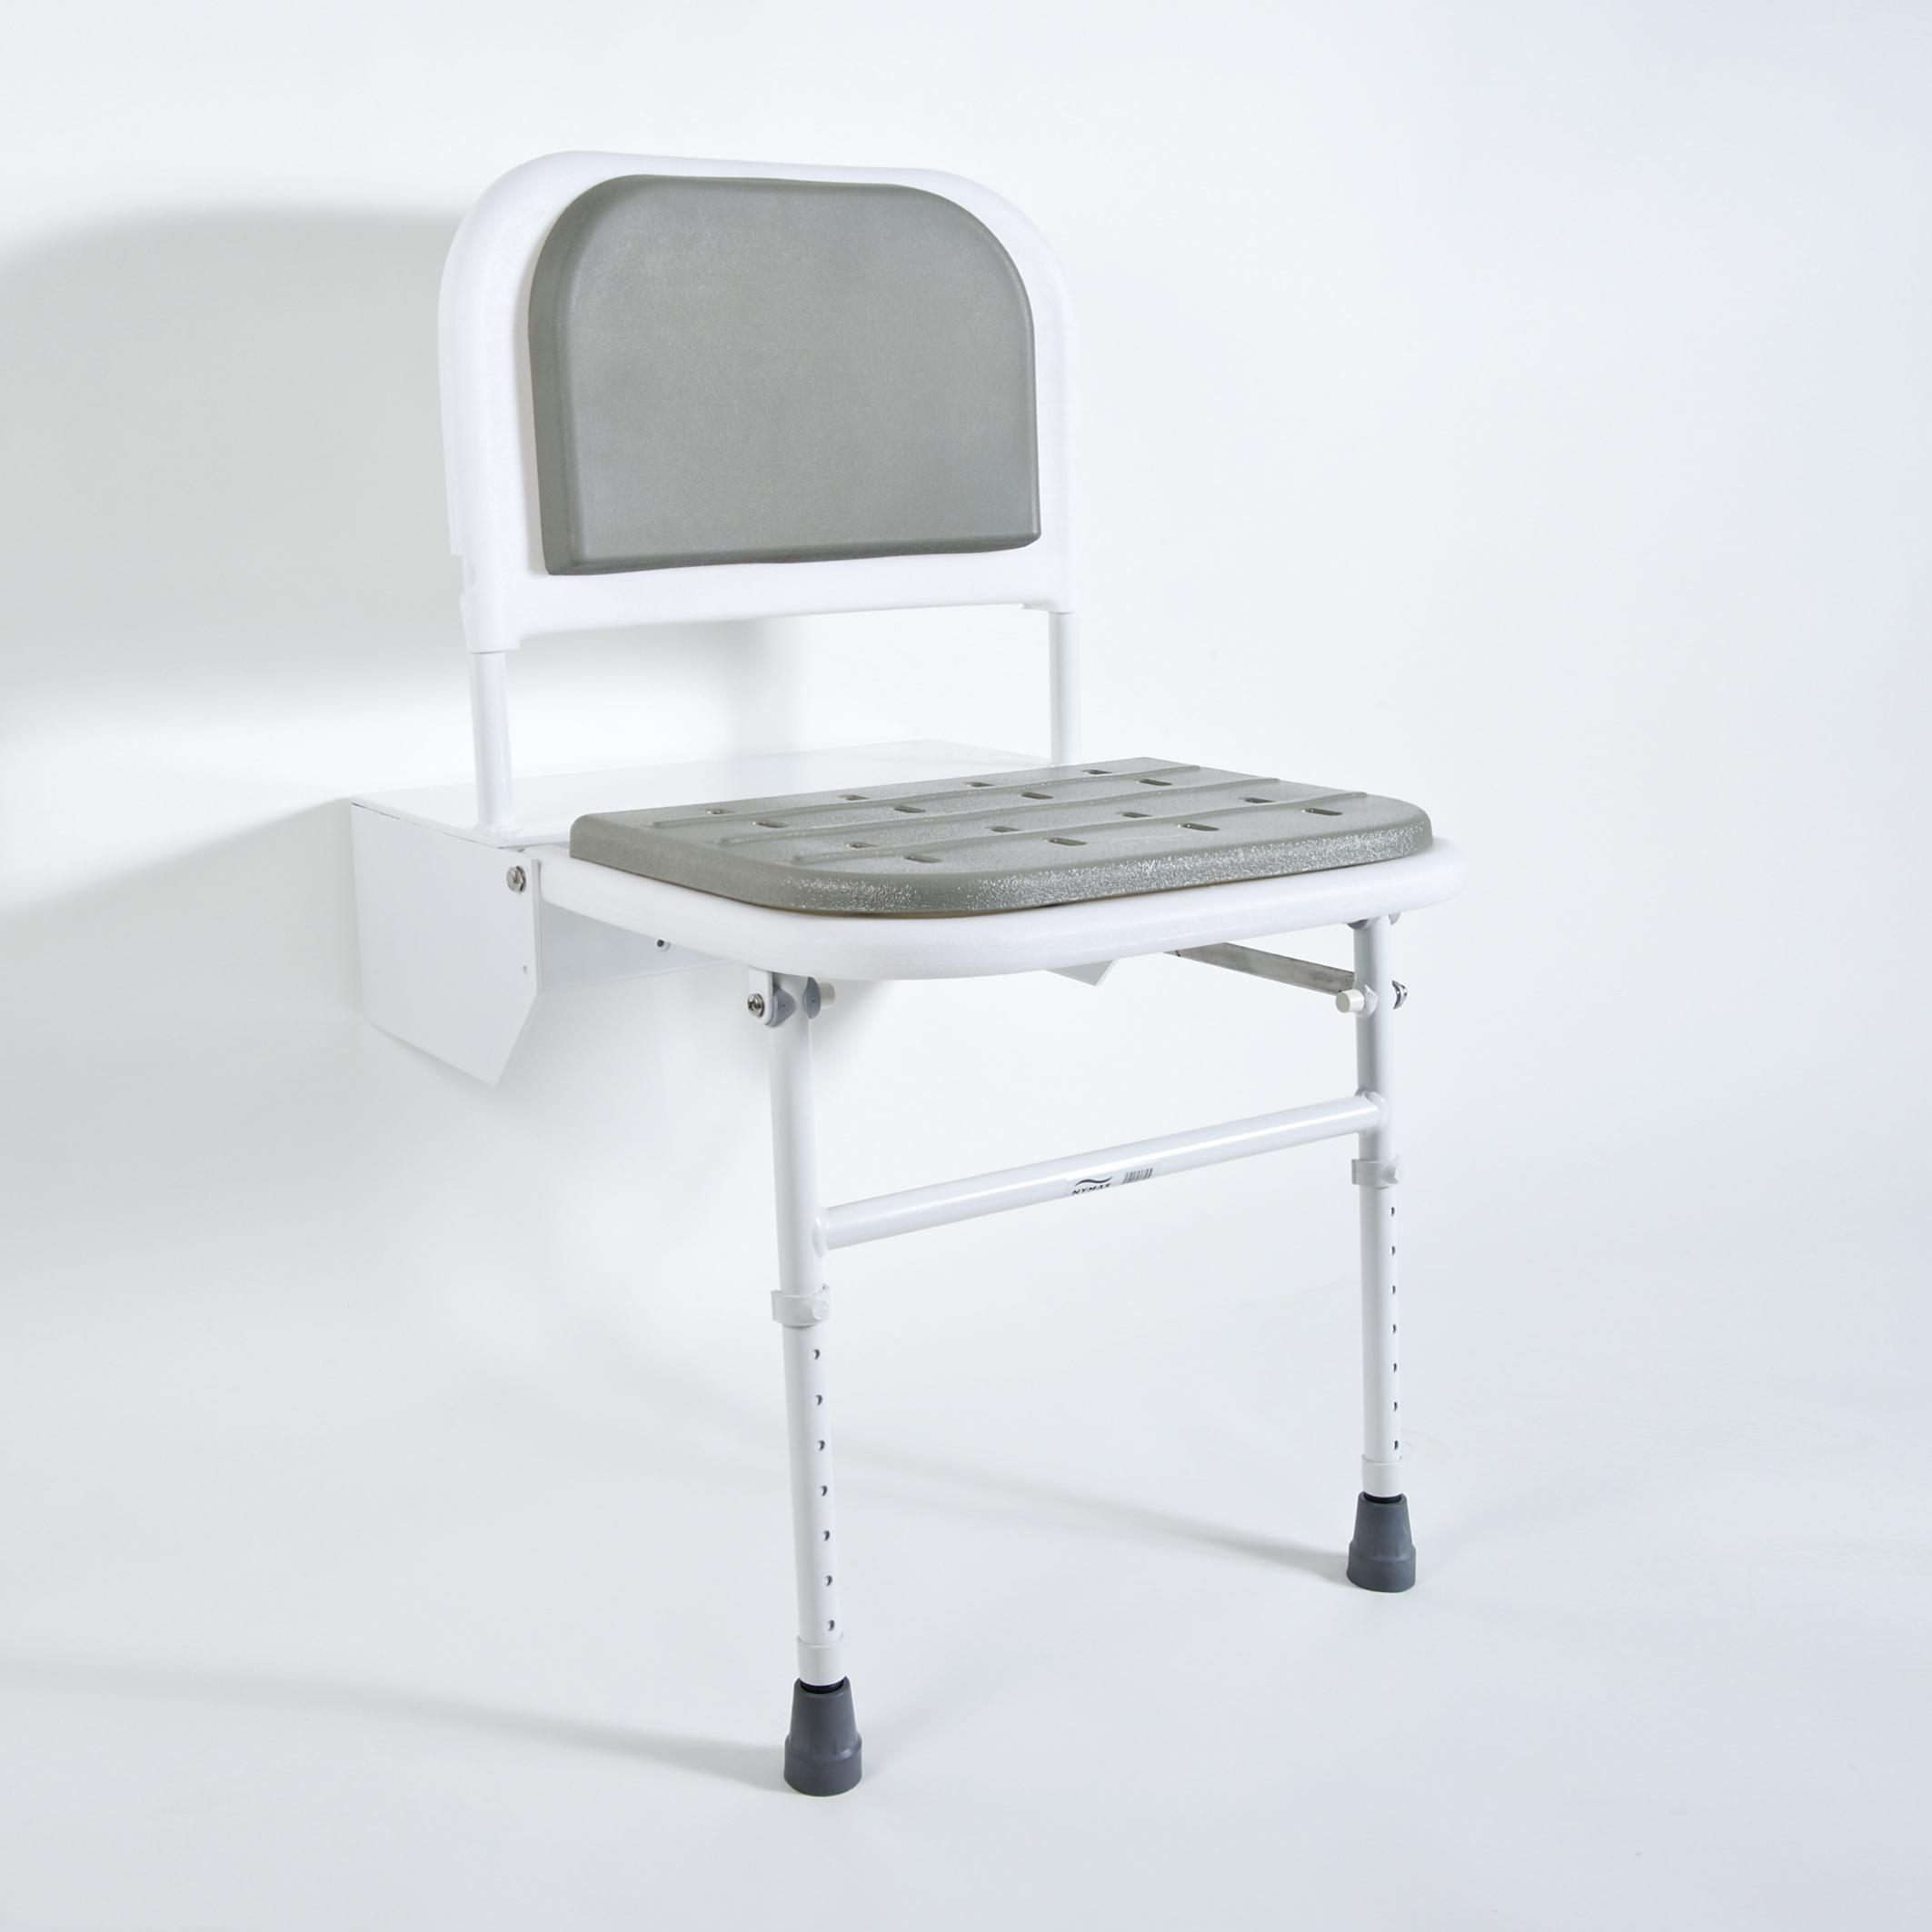 BRISTAN DOCM SHOWER SEAT WITH LEGS WHITE